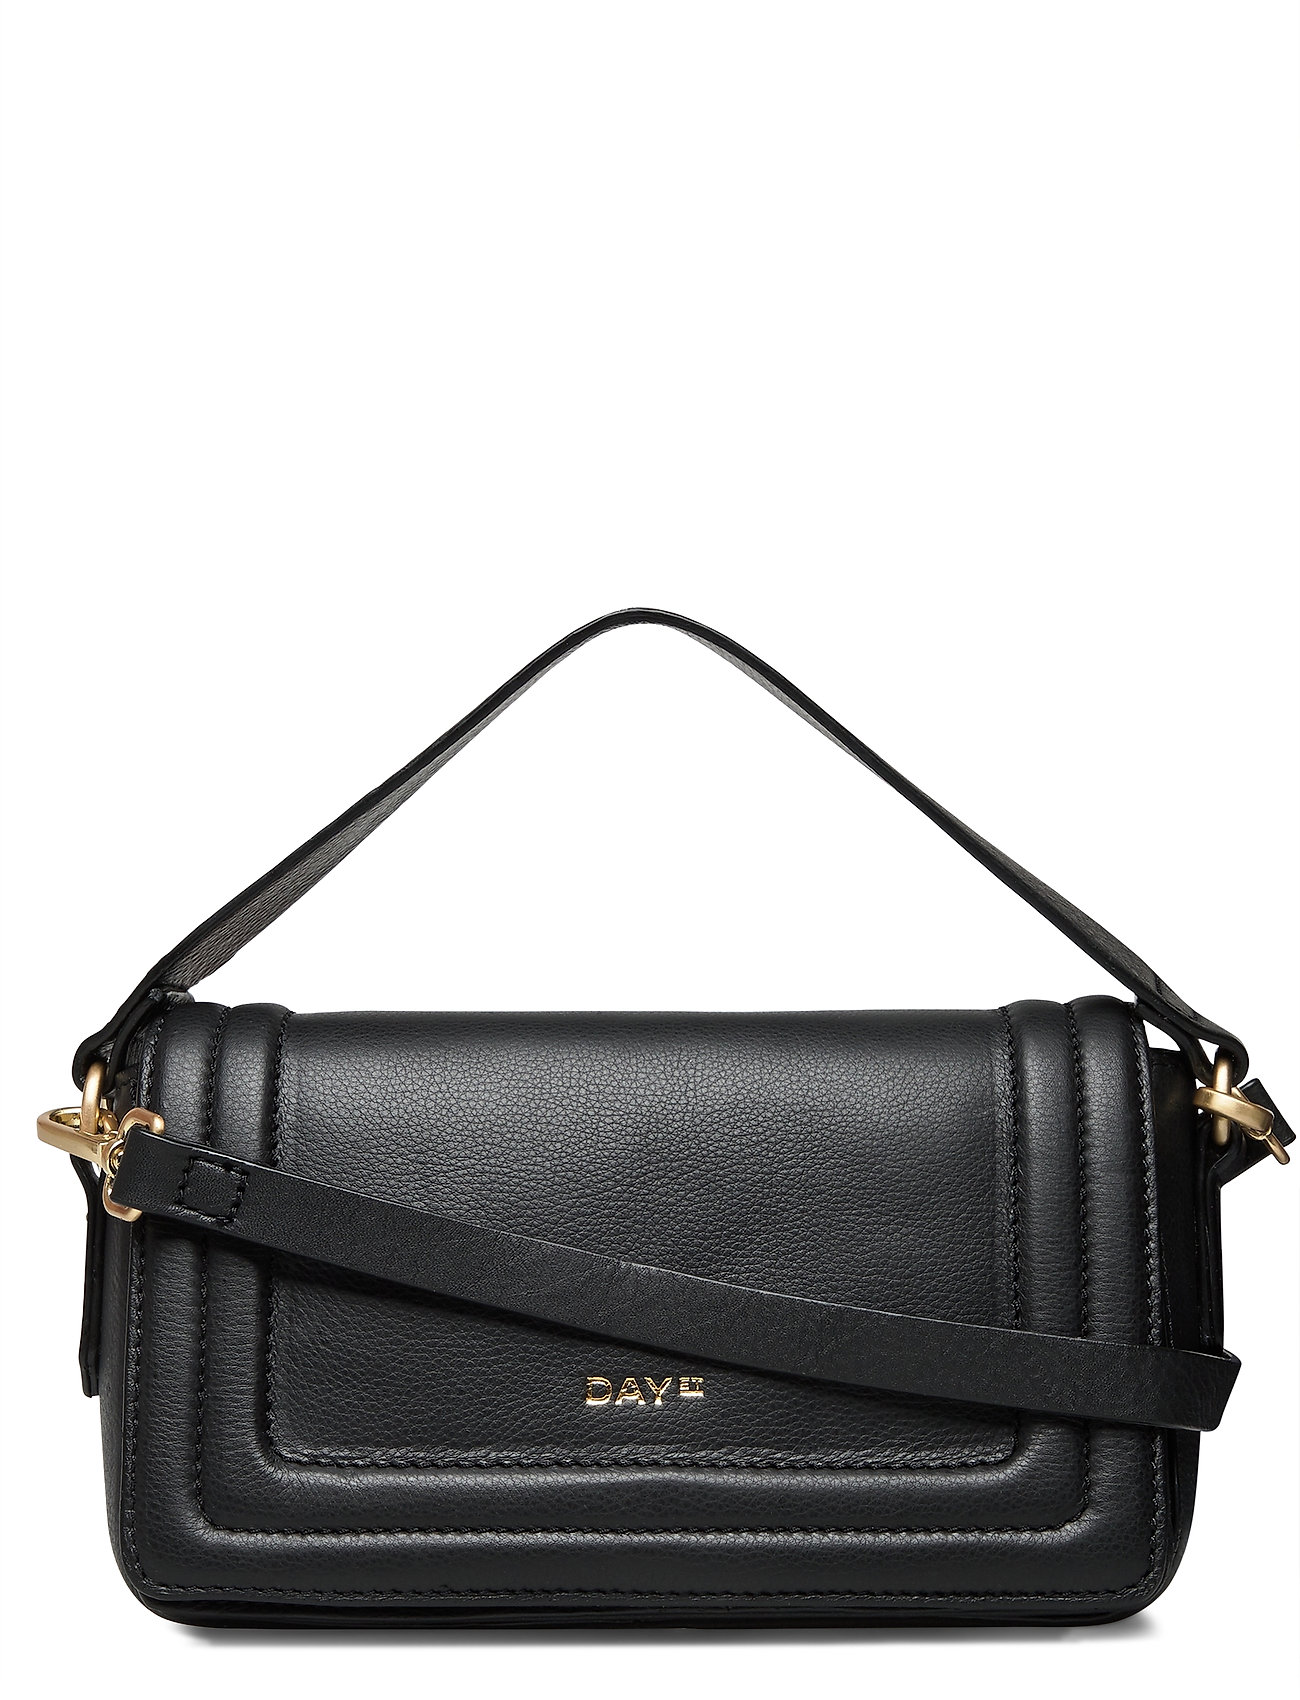 Image of Day Amman Cb Bags Small Shoulder Bags - Crossbody Bags Sort DAY Et (3445901481)